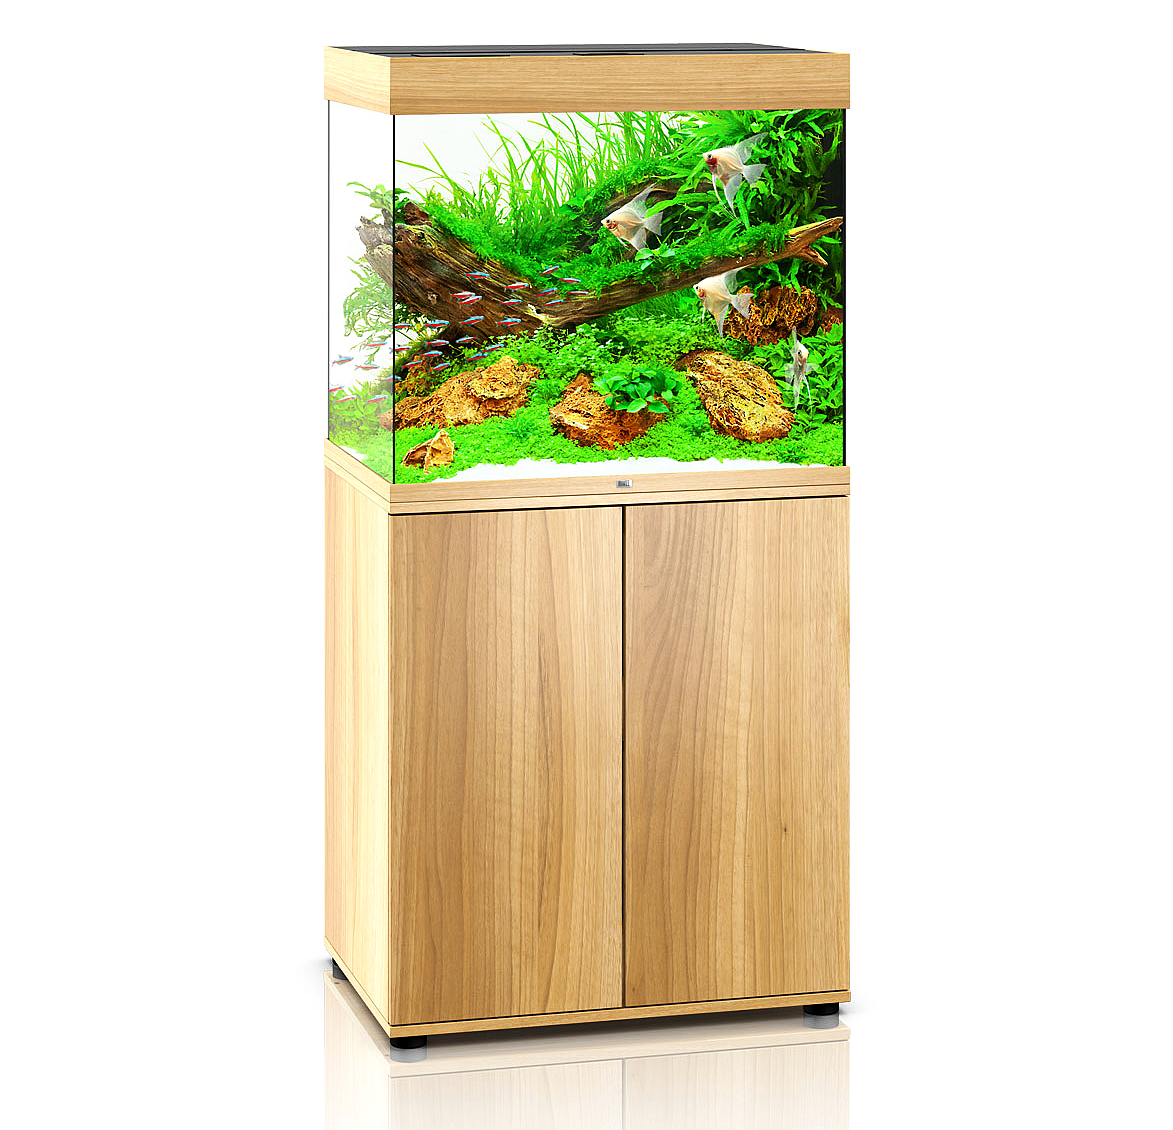 juwel aquarium unterschrank sbx lido 200 helles holz. Black Bedroom Furniture Sets. Home Design Ideas